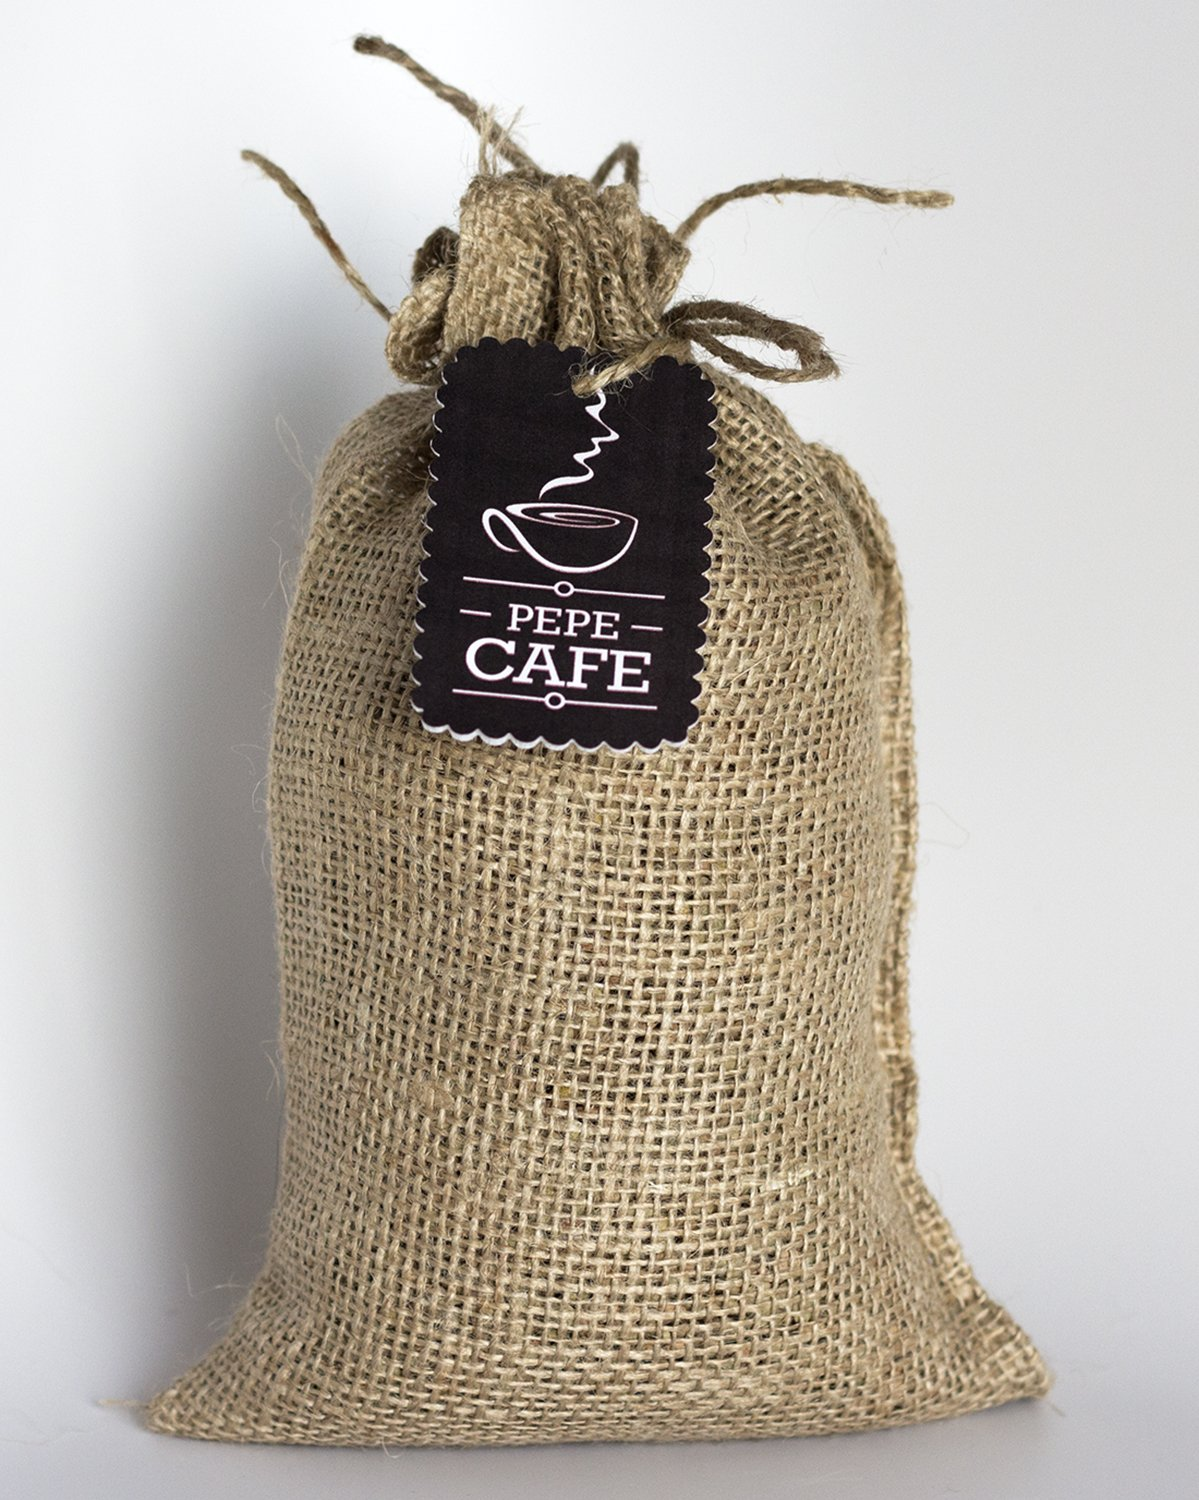 3 lbs GUATEMALA GREEN COFFE BEANS - MICRO LOT, Green (unroasted) Coffee Beans, fair trade, eco friendly Pepe Cafe